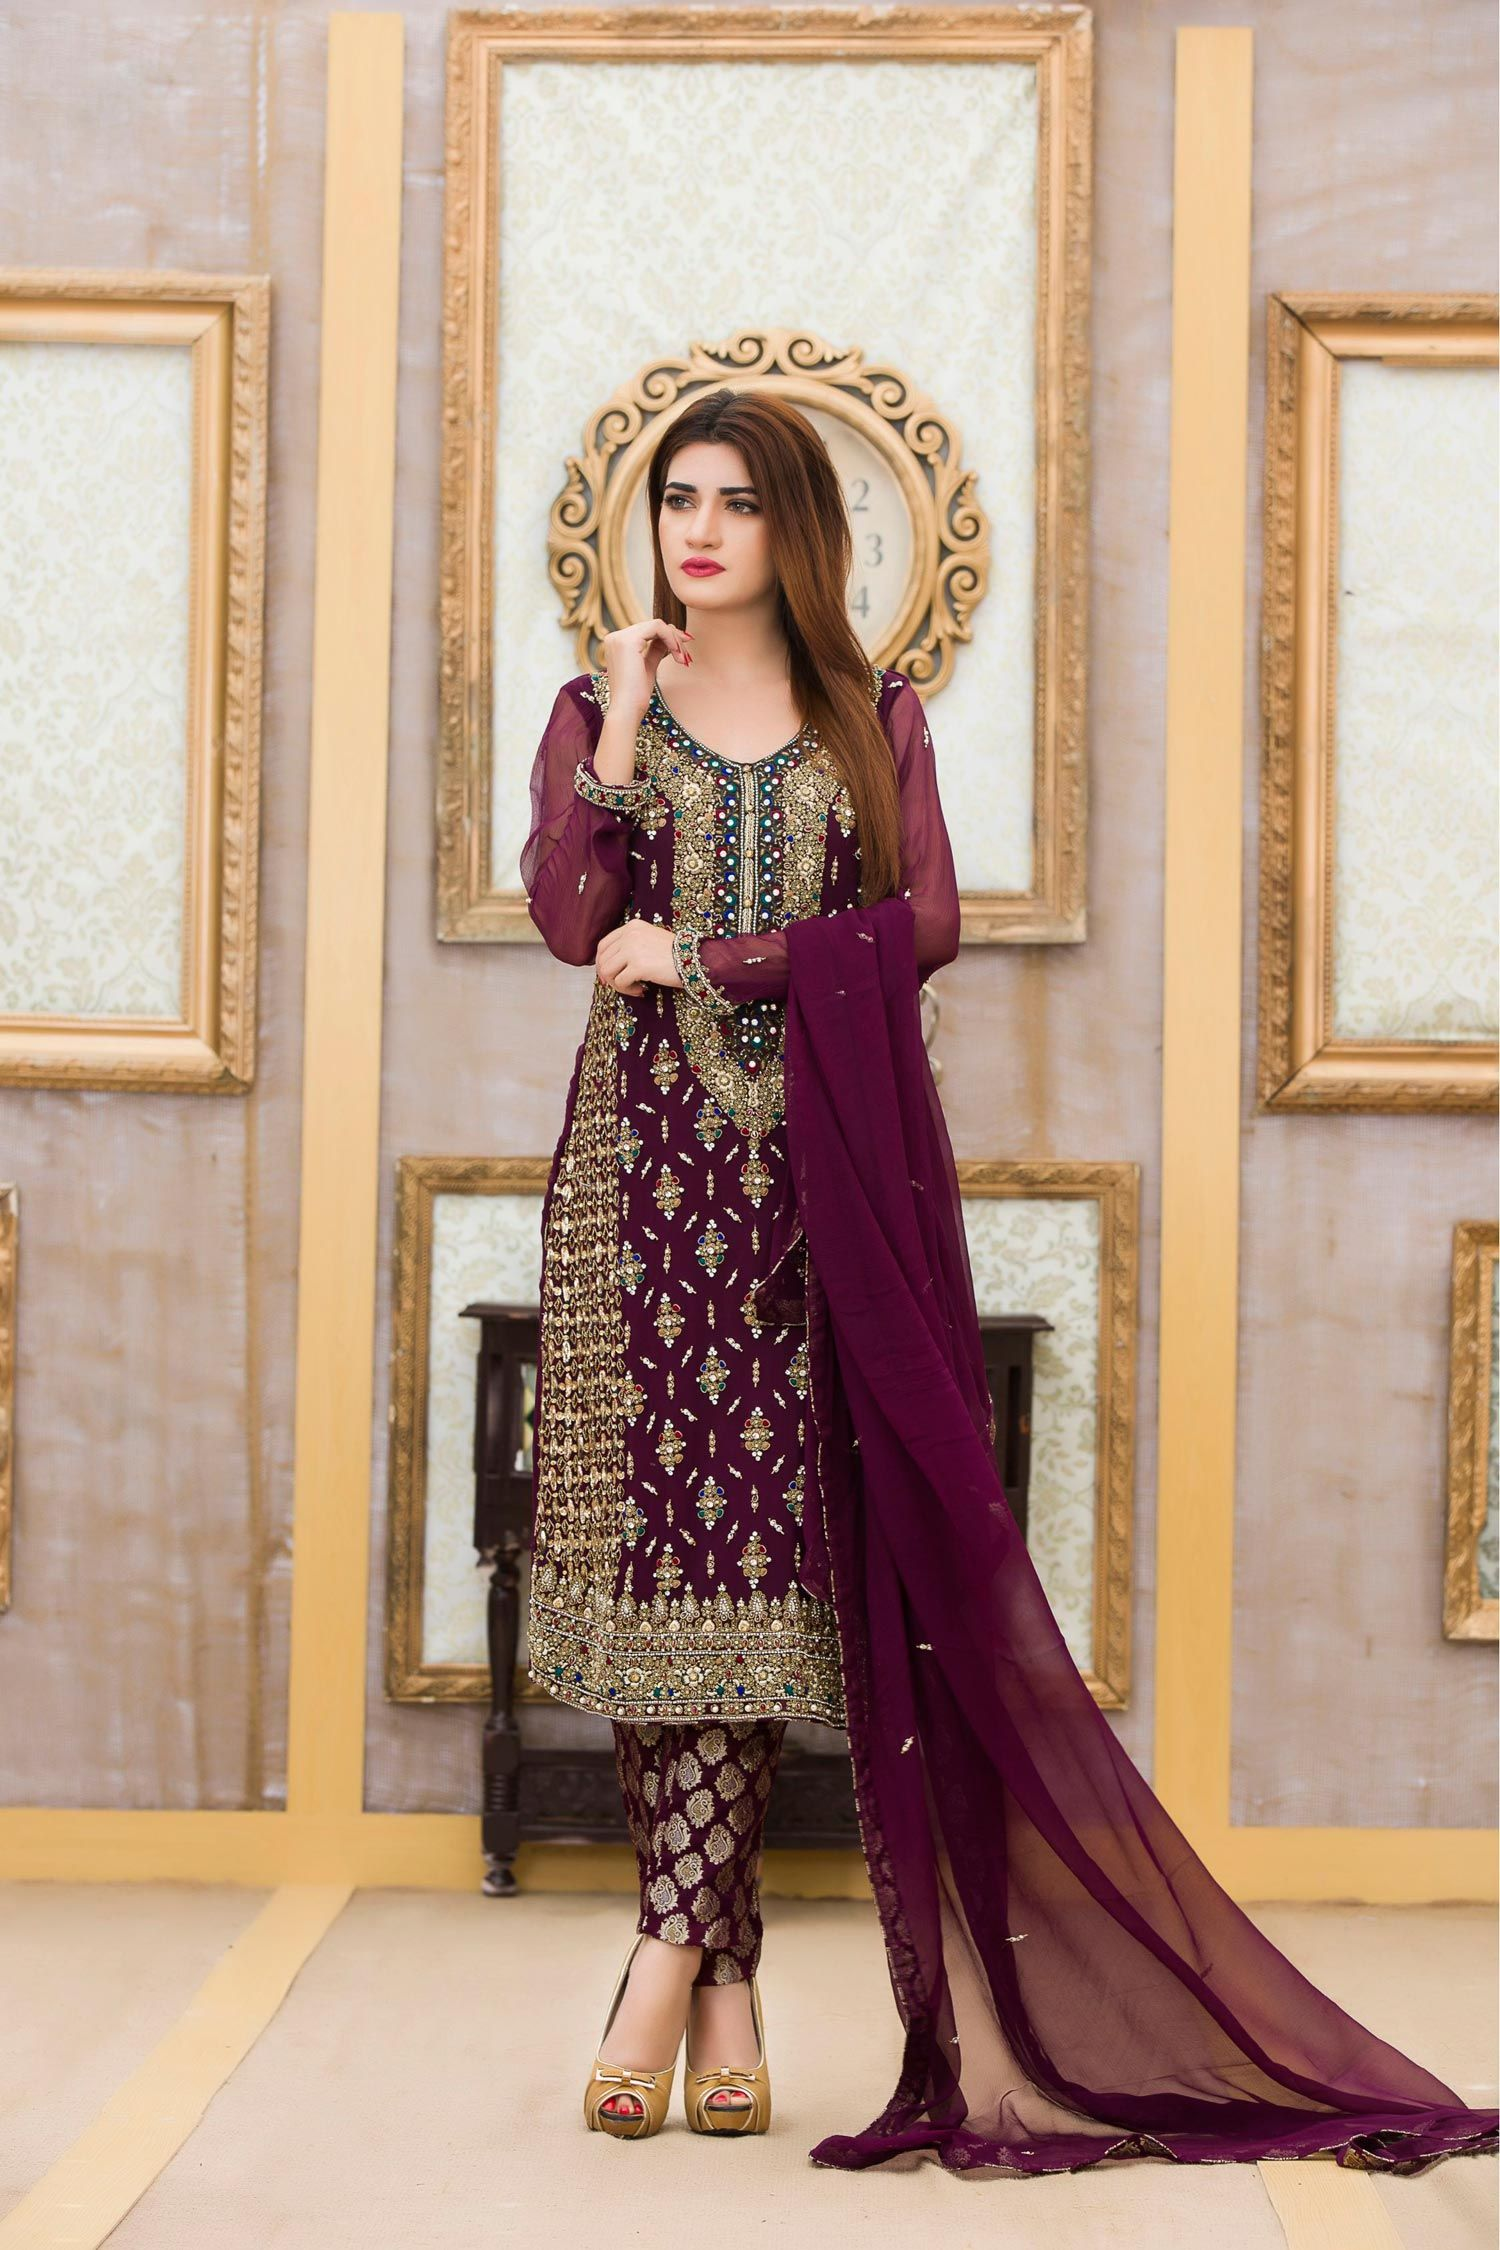 fd87fced705d6 Make your collection more attractive and charming with this glorious  embroidered bridal dress.Chiffon shirt adorned rich and magnificent  embellishment hand ...